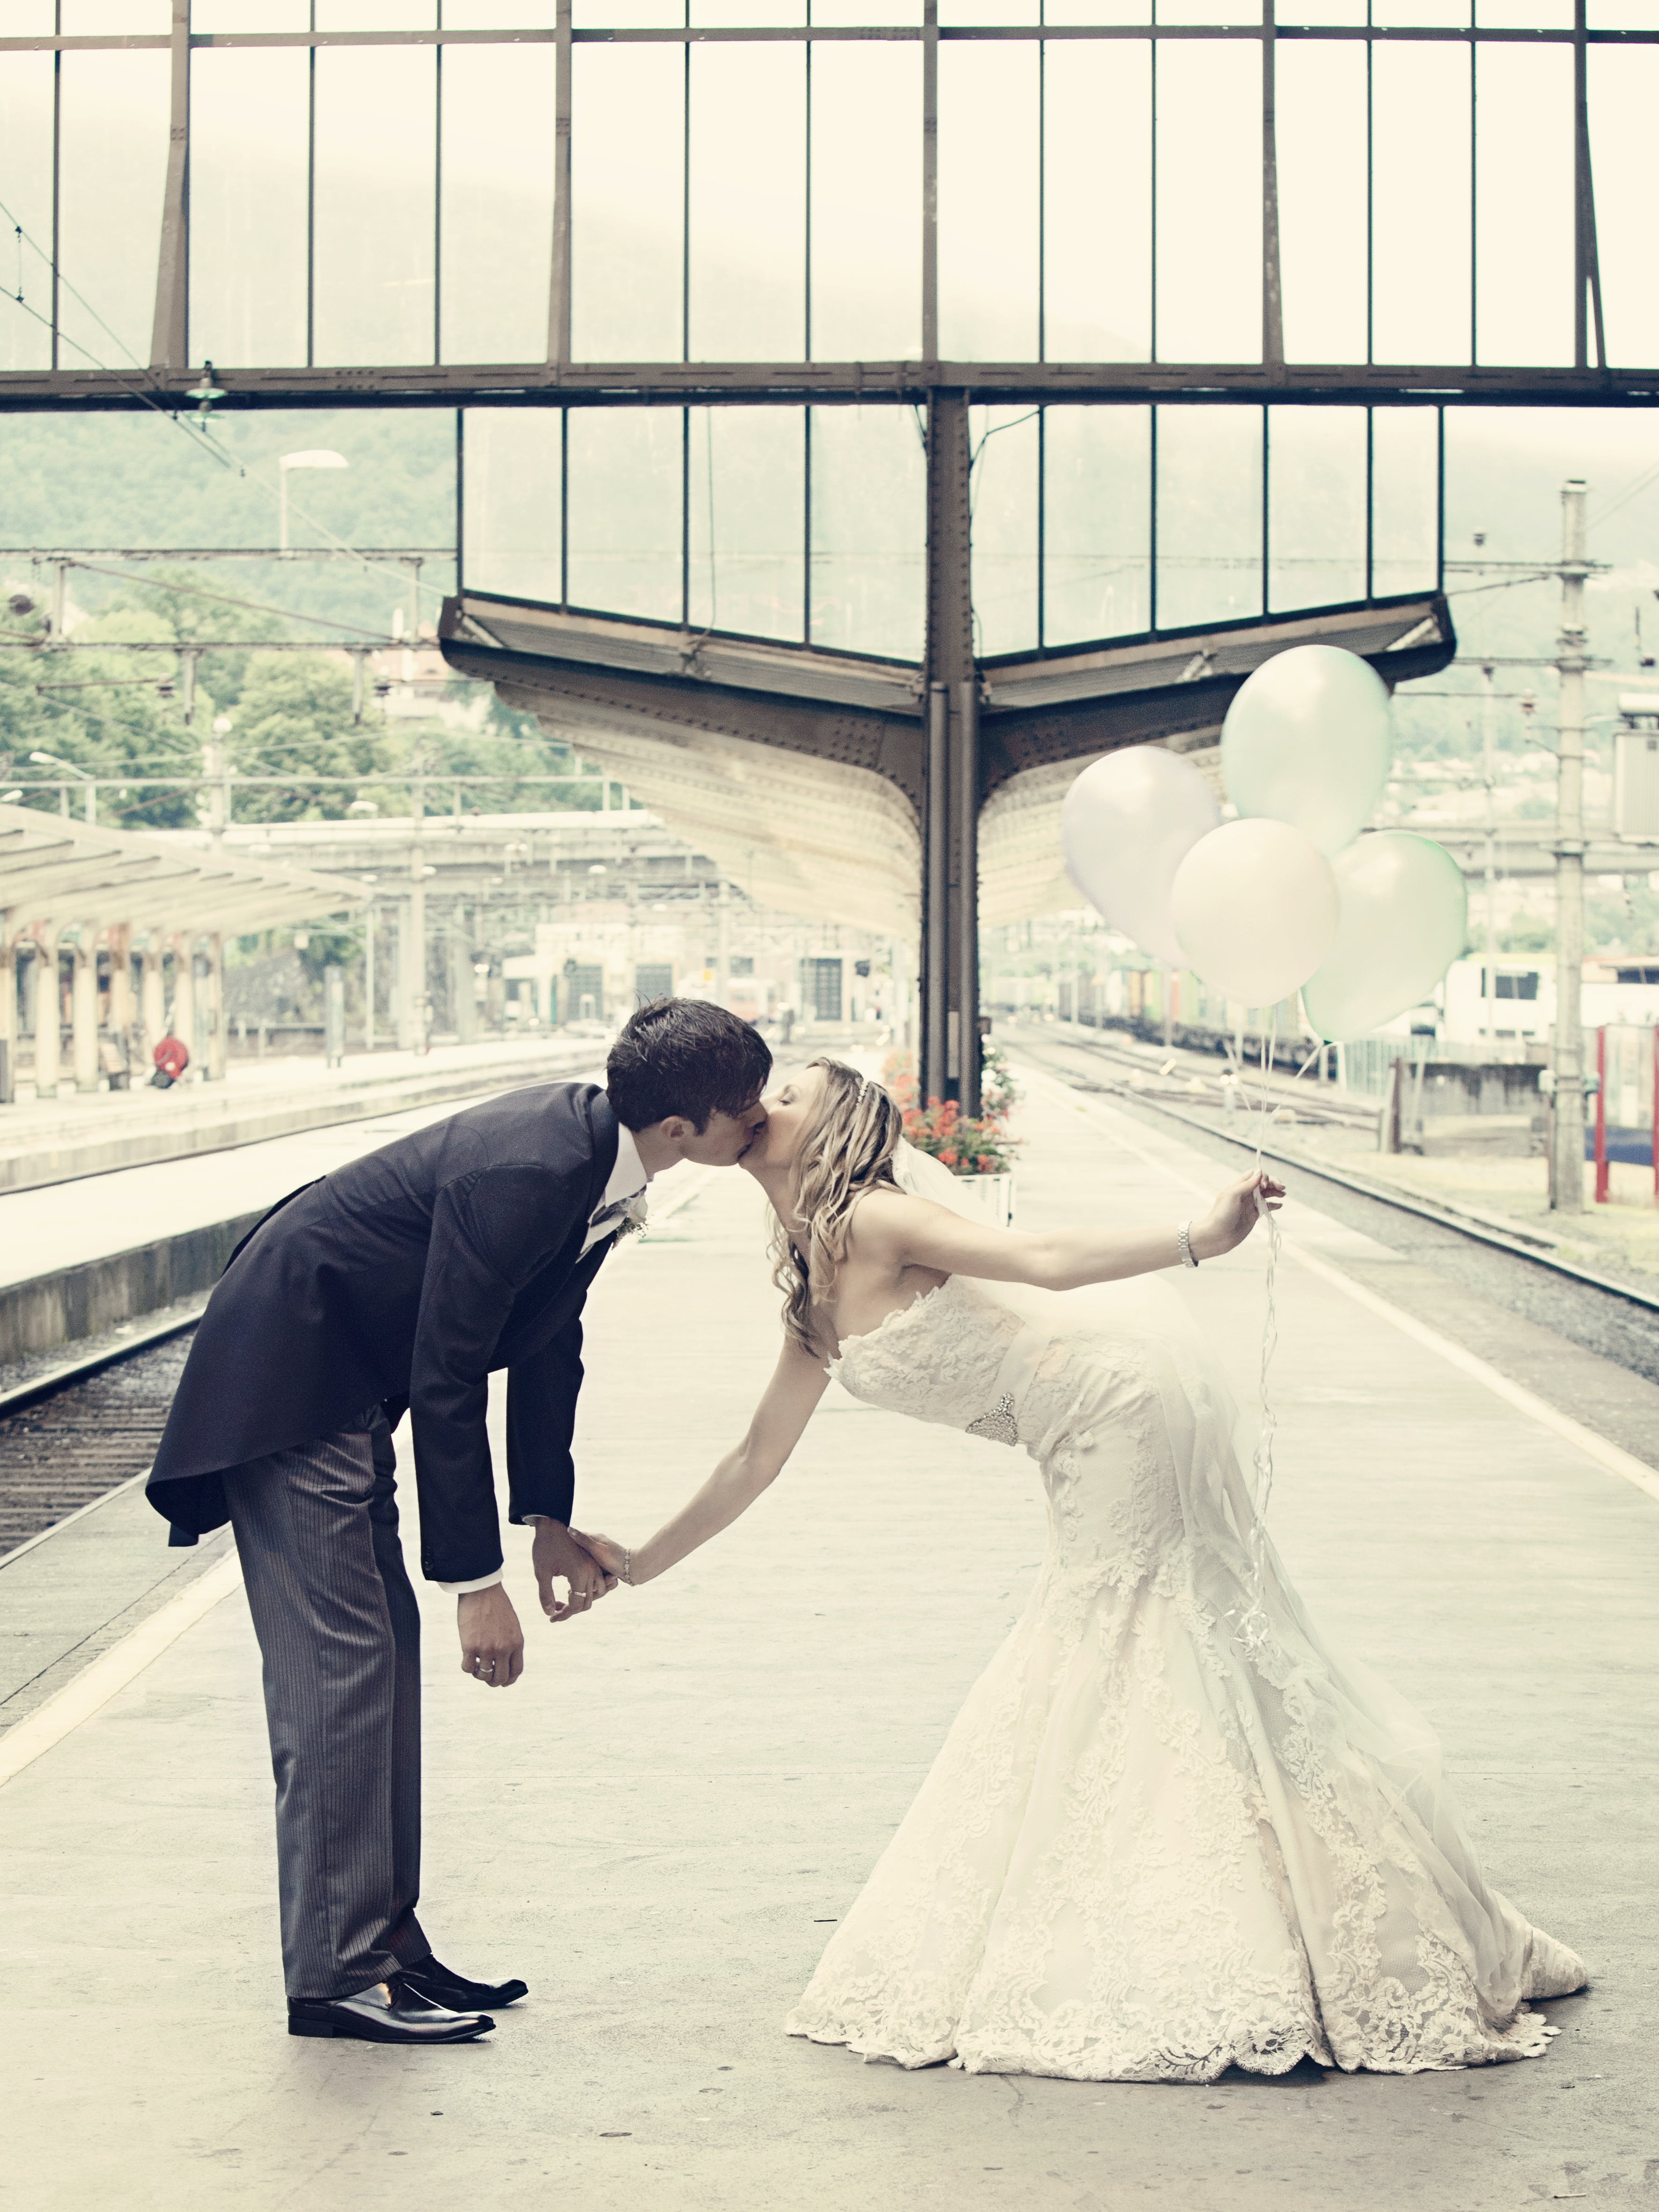 Couple Kissing Standing on the Train Waiting Platform